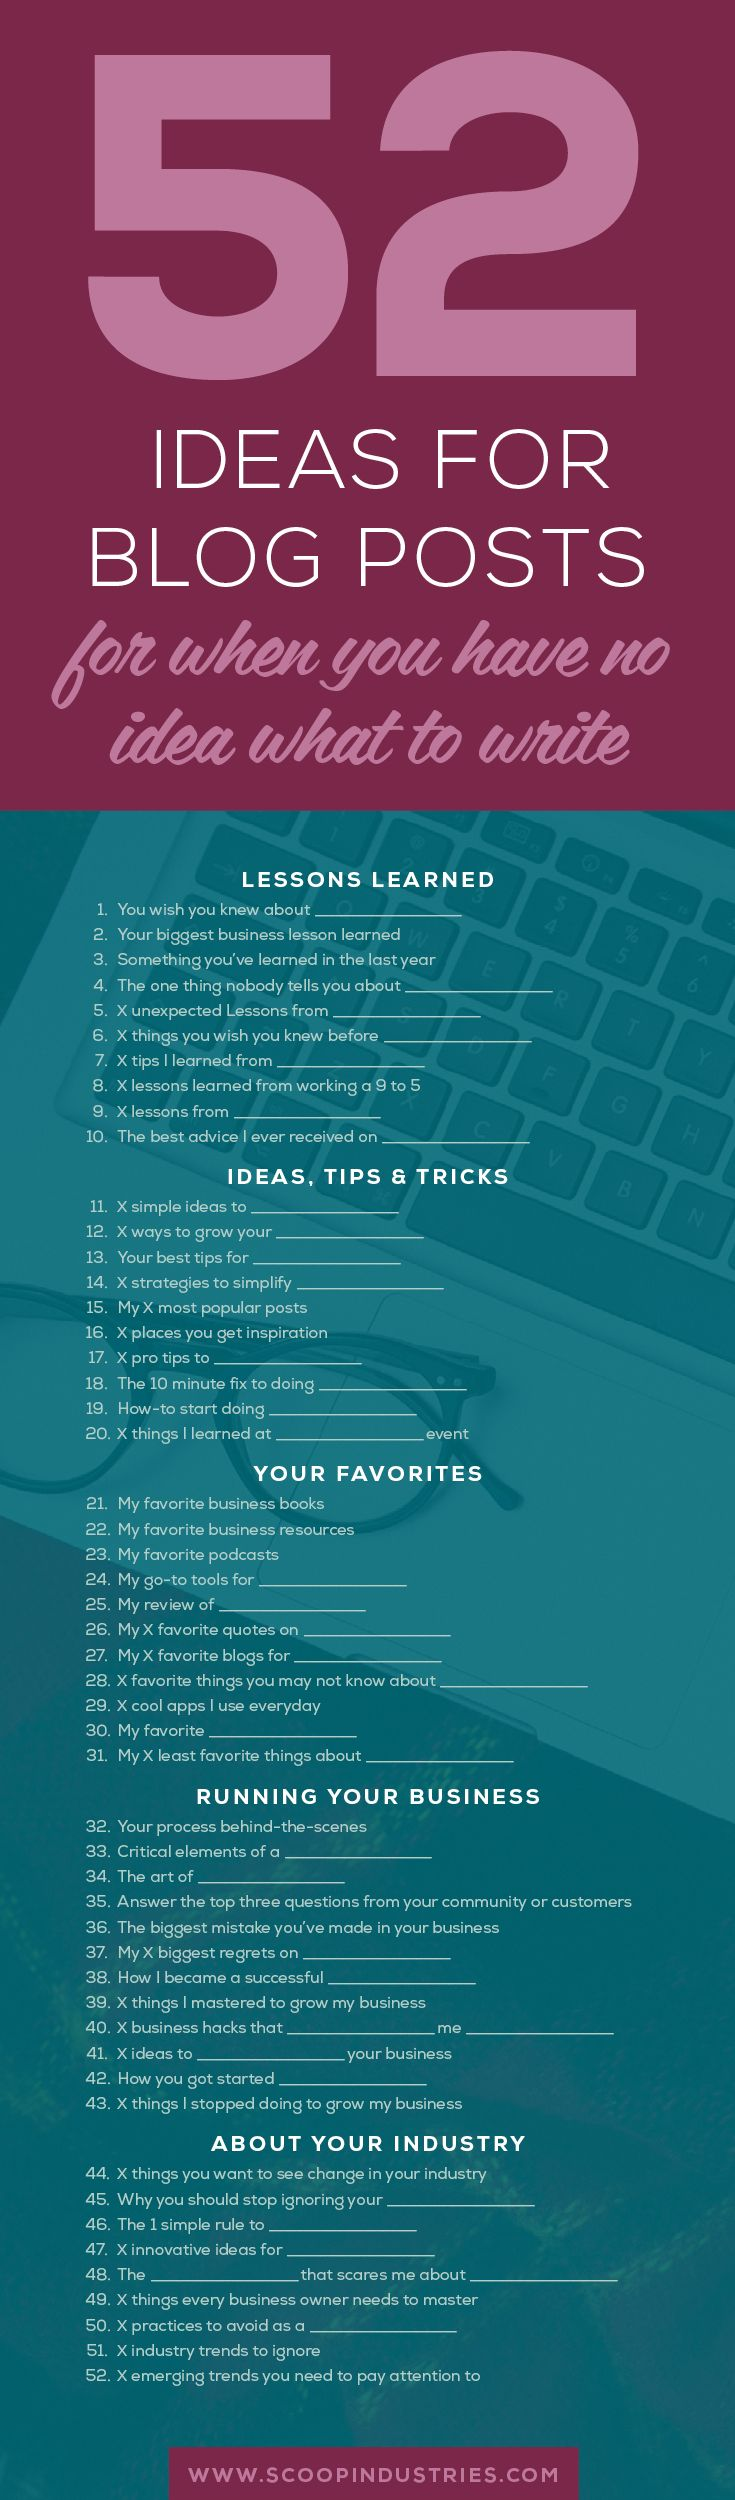 Do you struggle to come up with blog post ideas? Never get stuck again with your blogging! *PIN* this list of 52 powerful blog post ideas and always have blog topics at your fingertips.